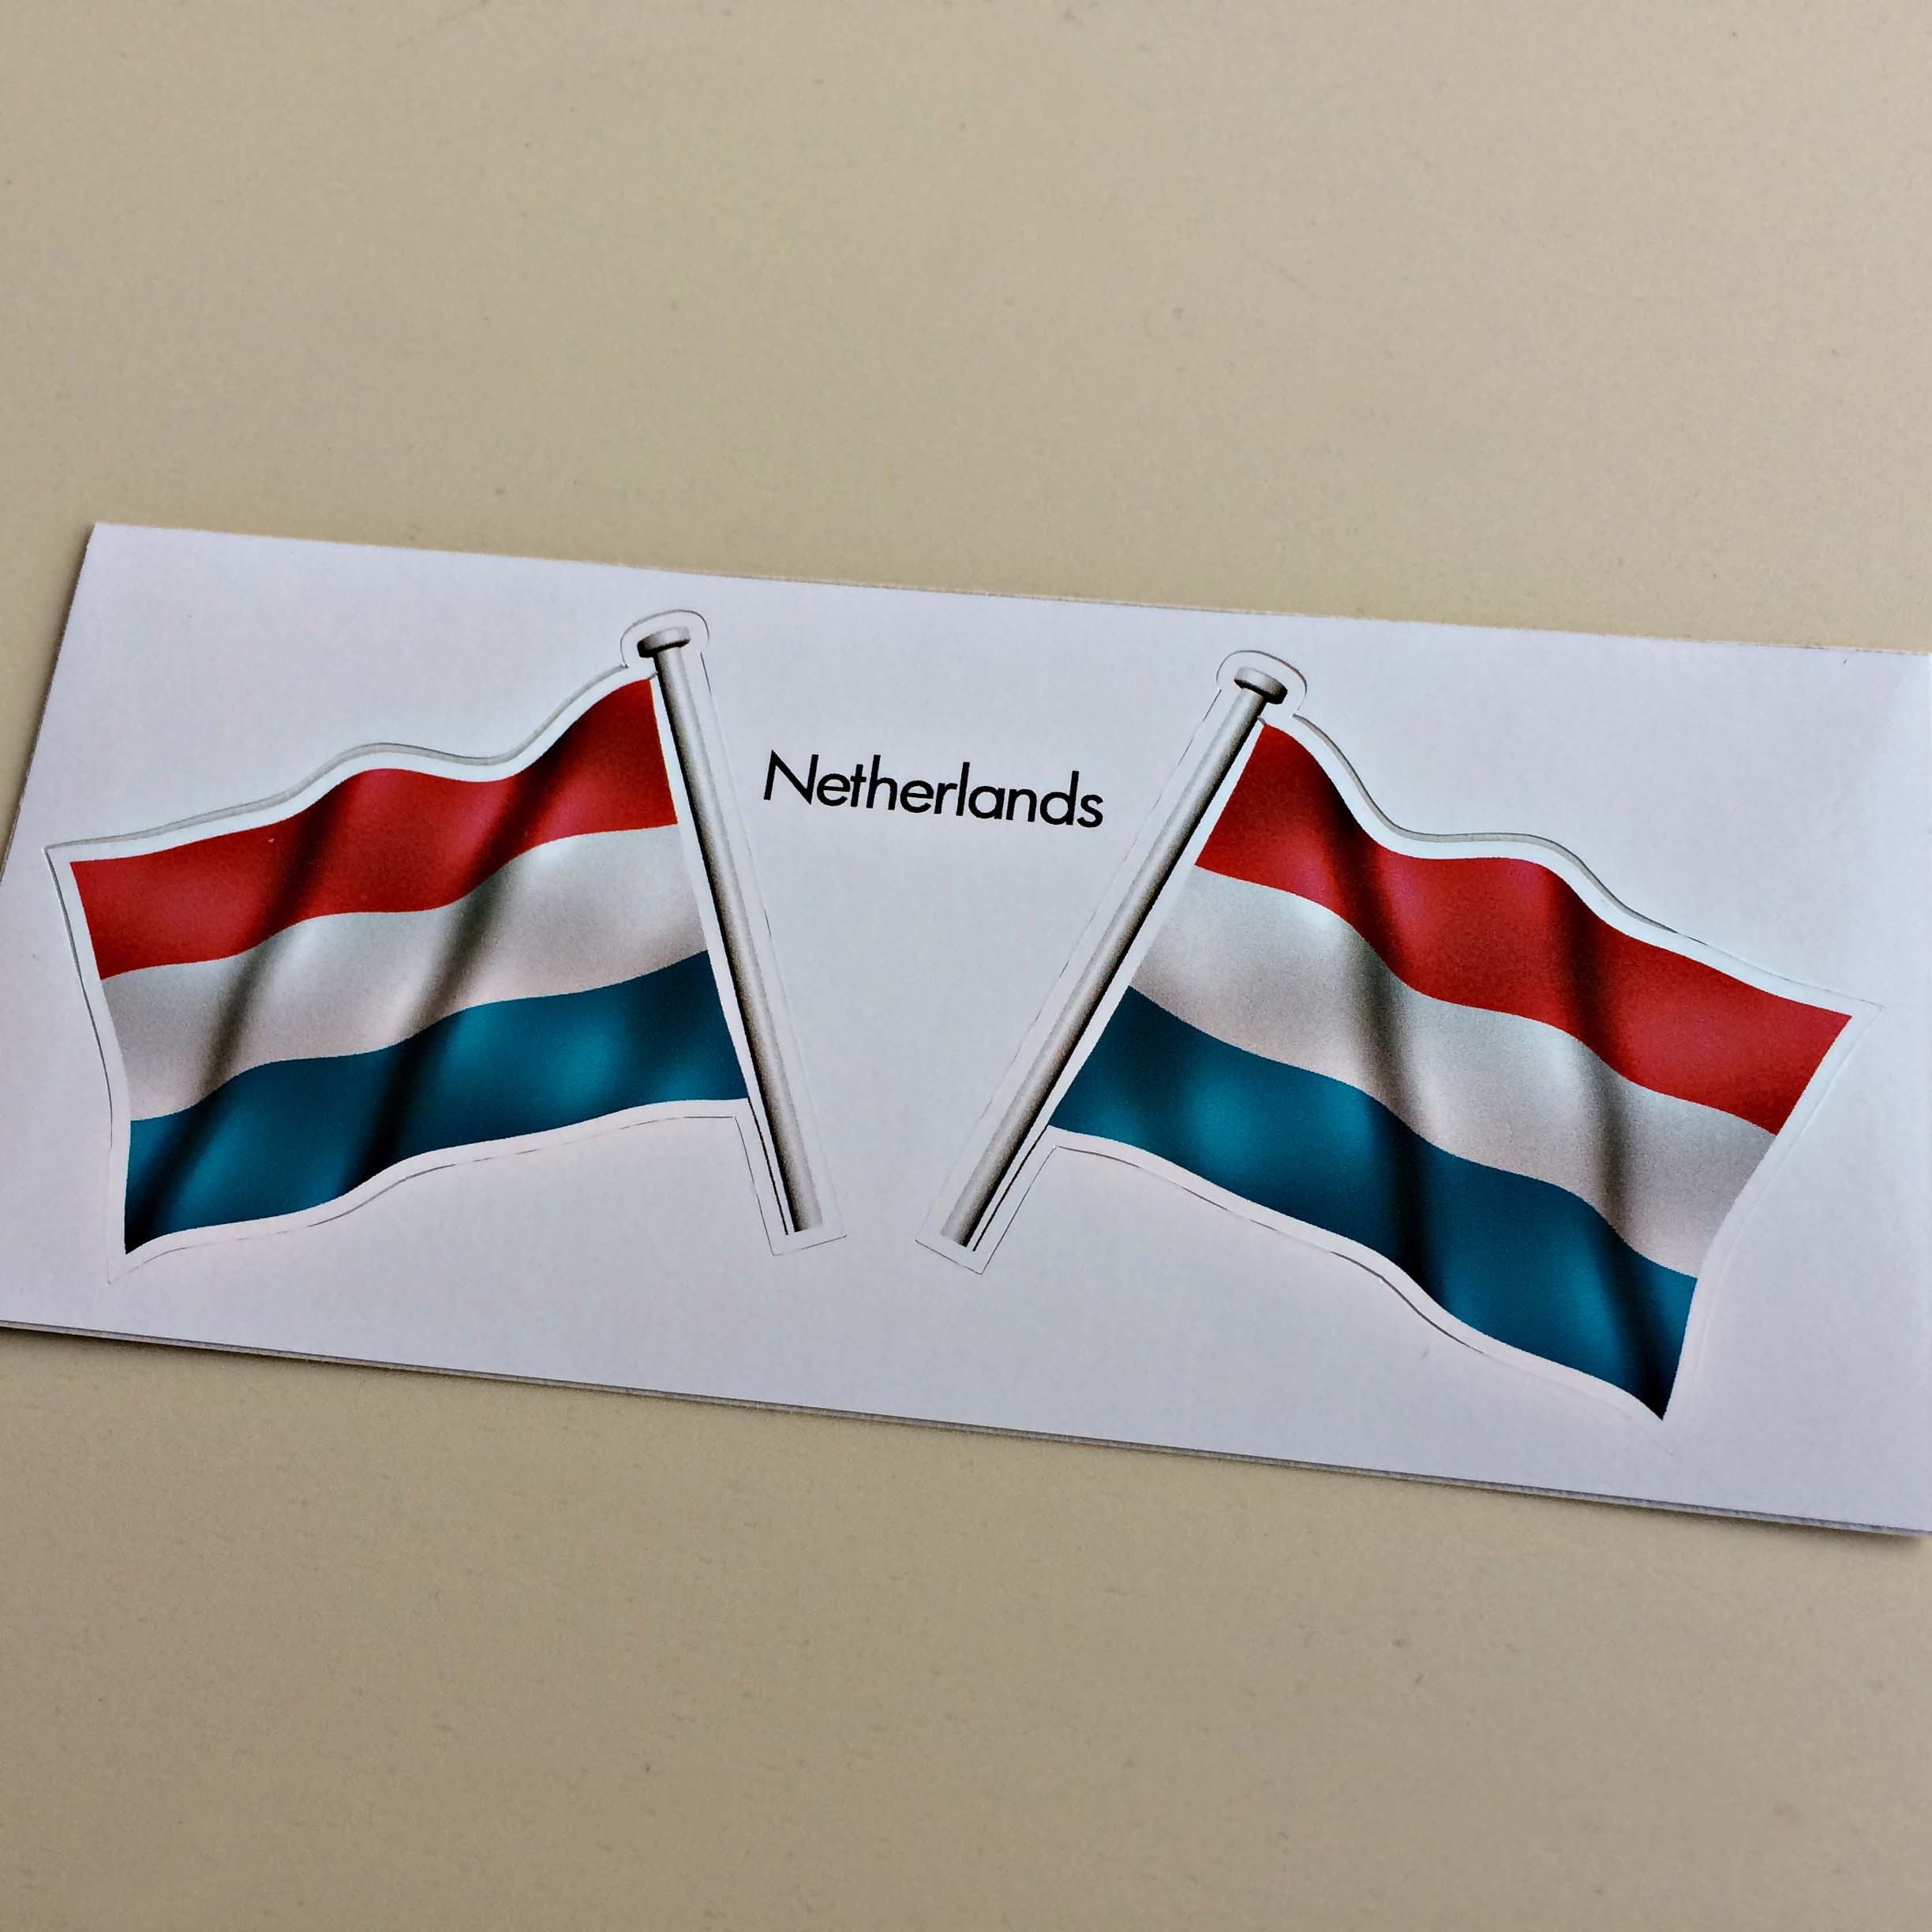 Two wavy flags on poles with Netherlands in black lettering in-between. The flag is a horizontal tricolour of red, white and blue.